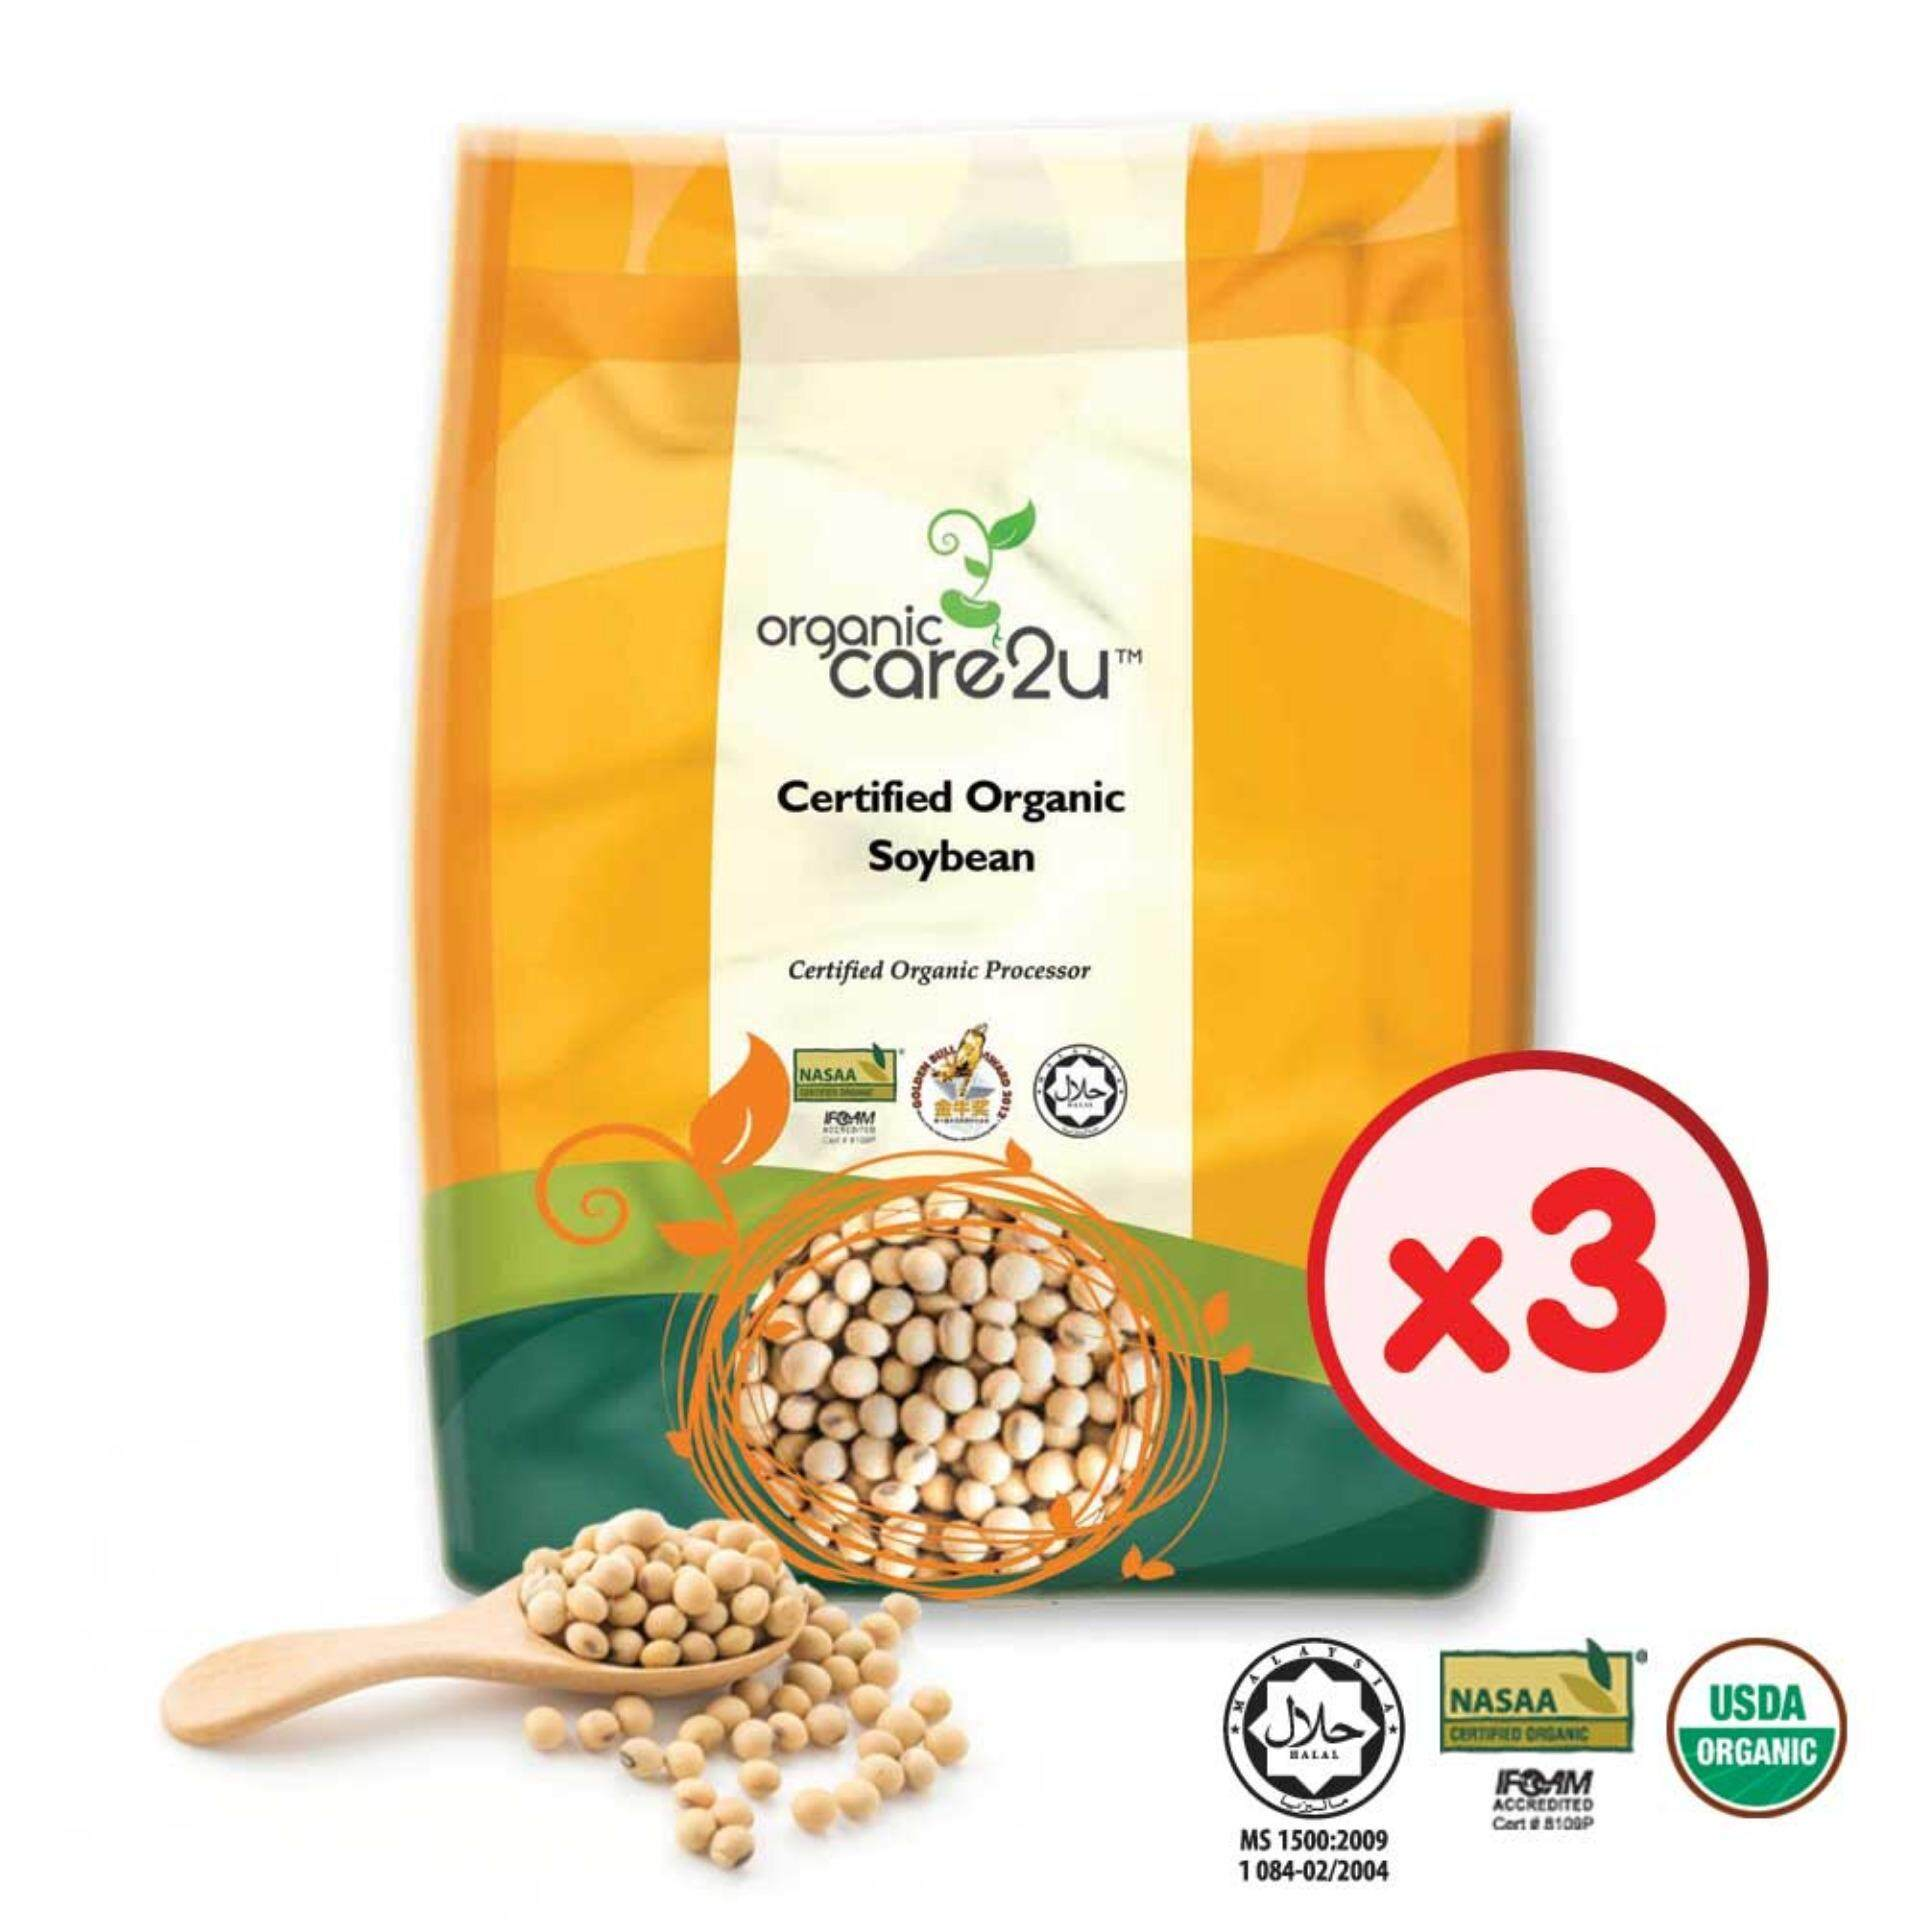 Organic Care2u Organic Soya Bean (400g) - [Bundle of 3]